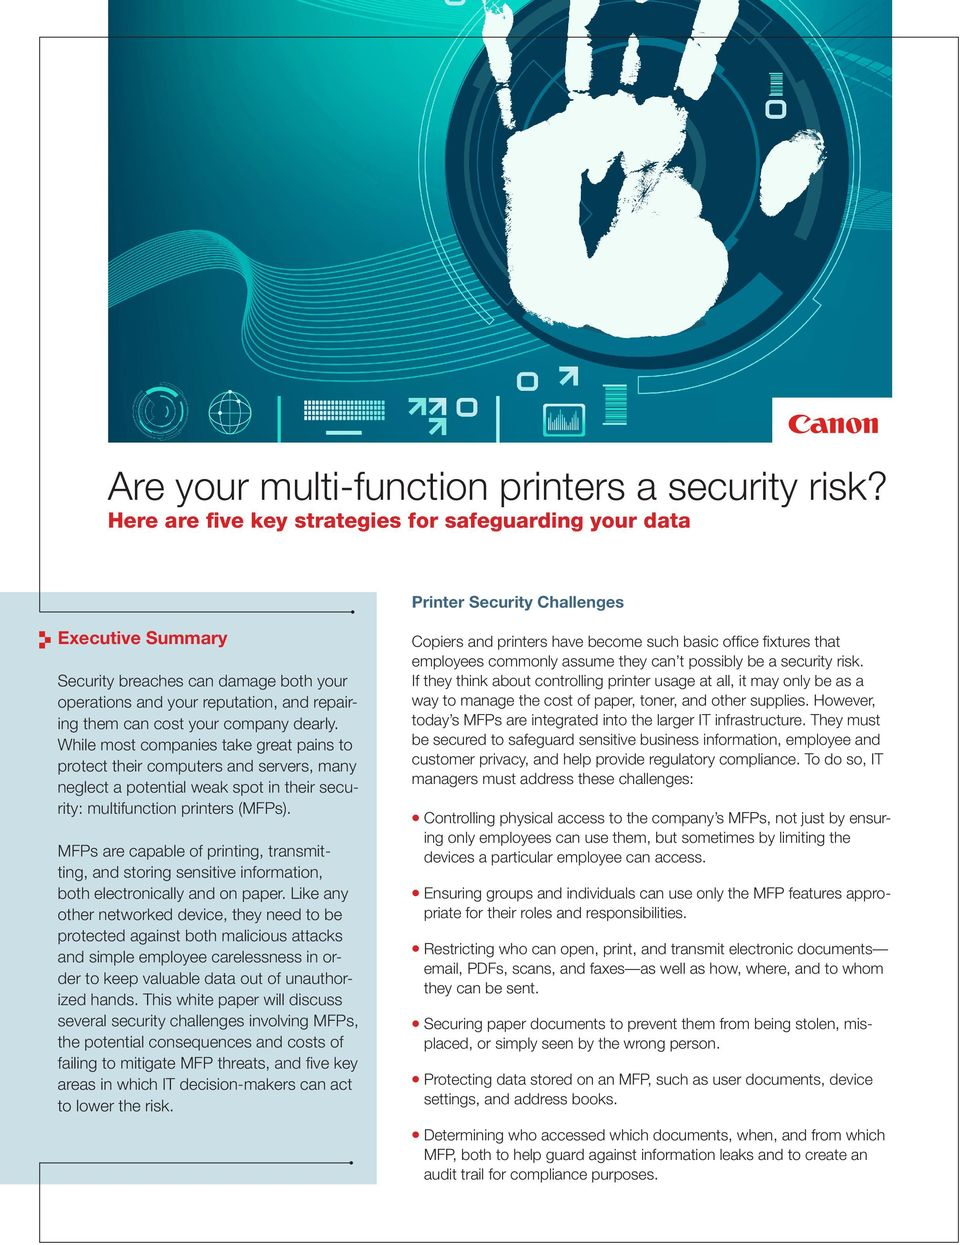 cost your company dearly. While most companies take great pains to protect their computers and servers, many neglect a potential weak spot in their security: multifunction printers (MFPs).